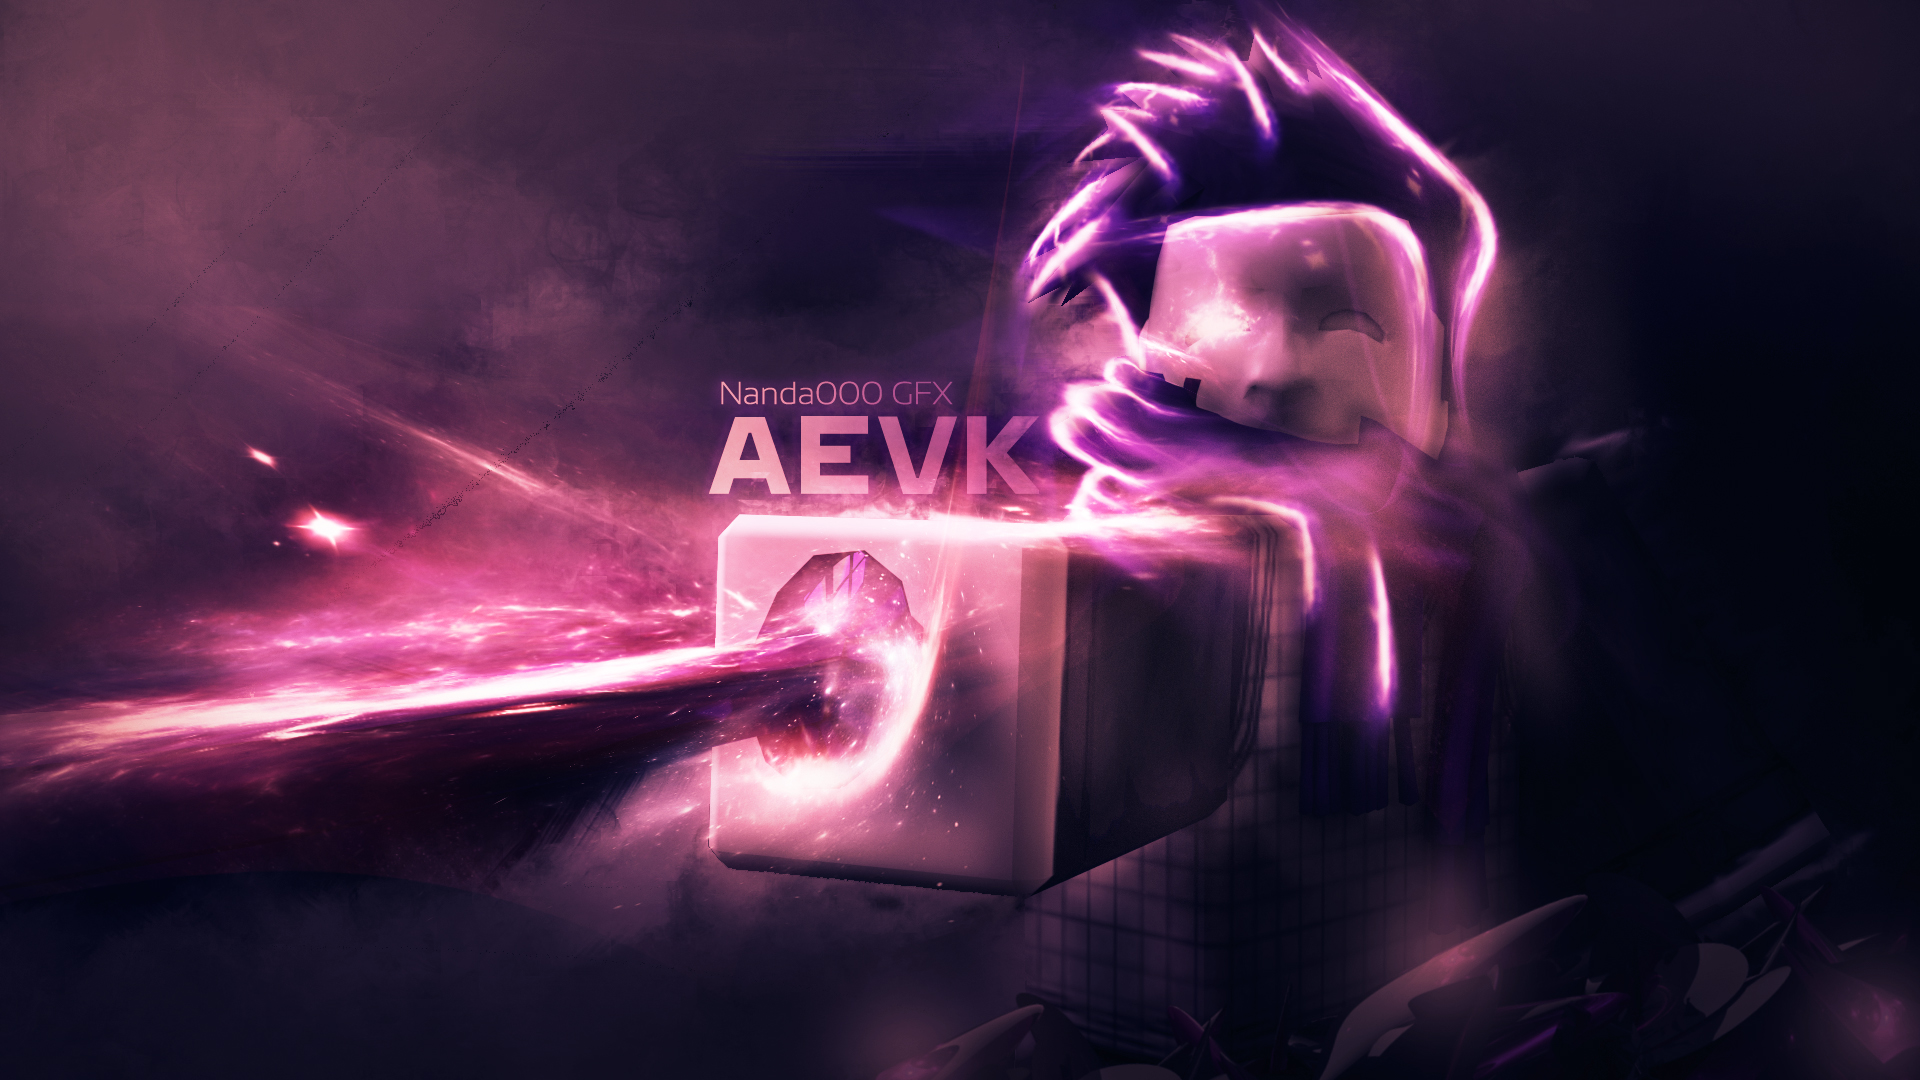 A Roblox Gfx By Nanda000 For Aevk A K A Pvparyadi By Nandamc On - this is the gfx i made of my roblox character 3 roblox pictures